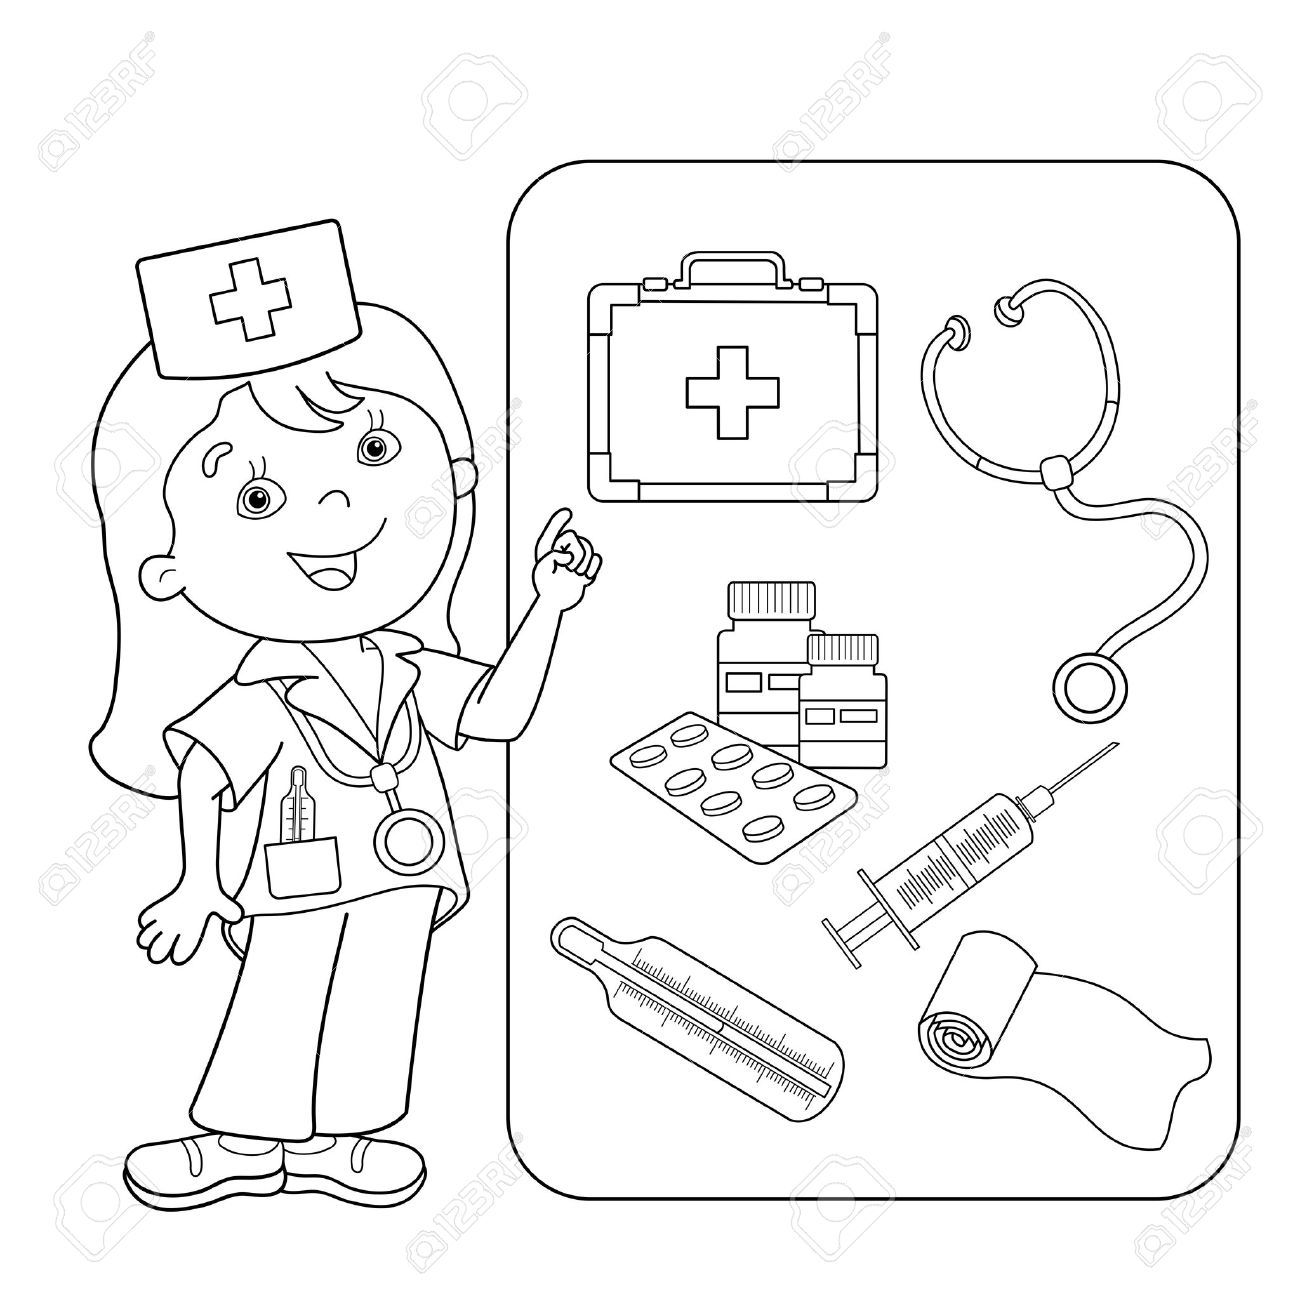 First Aid Kit Coloring Pages To Print First Aid For Kids Coloring For Kids Coloring Books